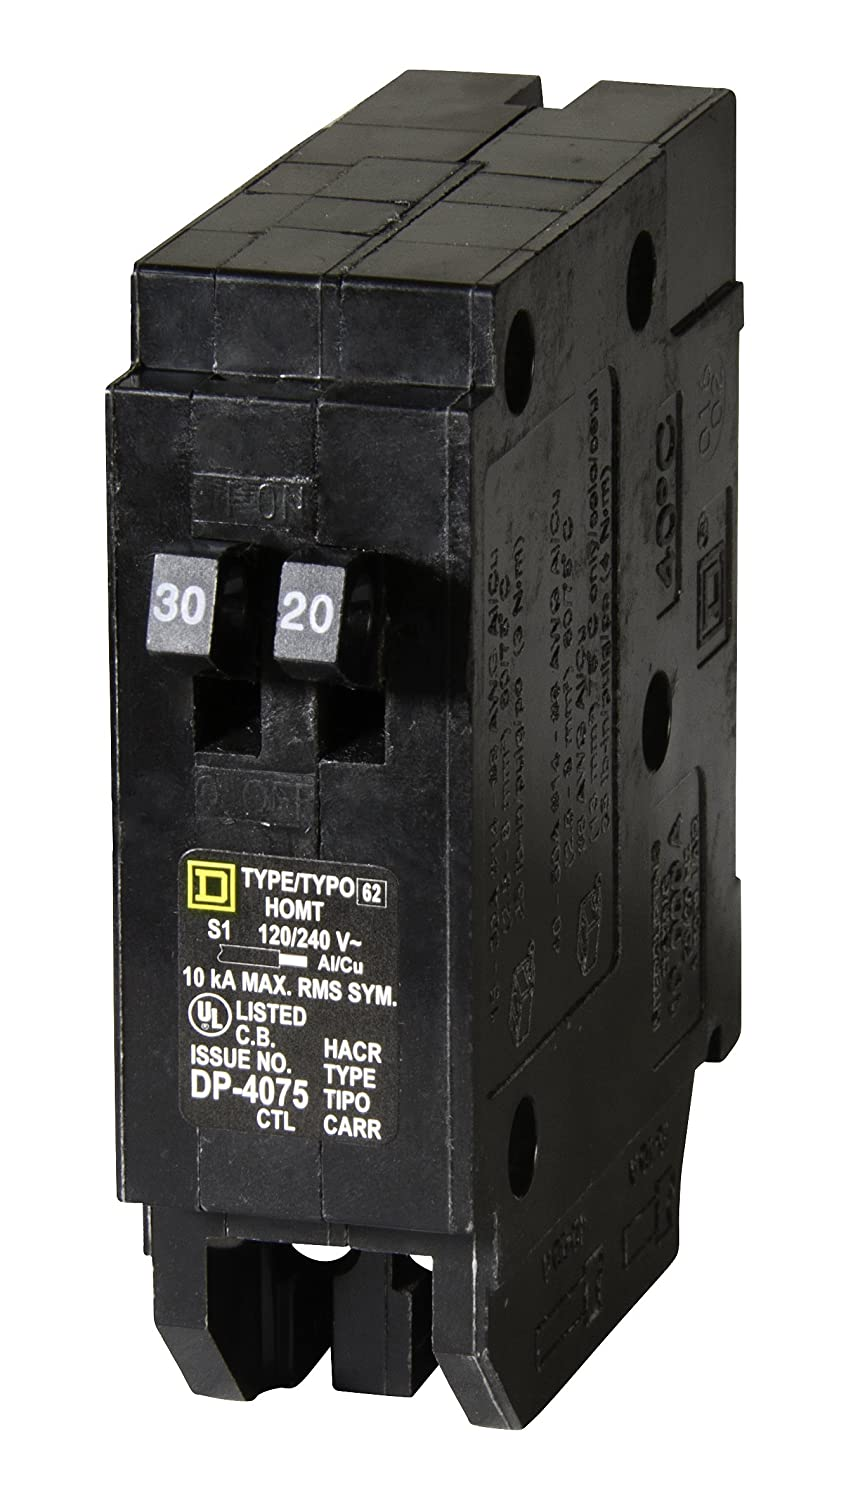 Square D By Schneider Electric Homt3020 Homeline 1 30 Amp 20 Breaker What Should Be Used A Gfci Or Is 15 Single Pole Tandem Circuit Thermal Magnetic Breakers